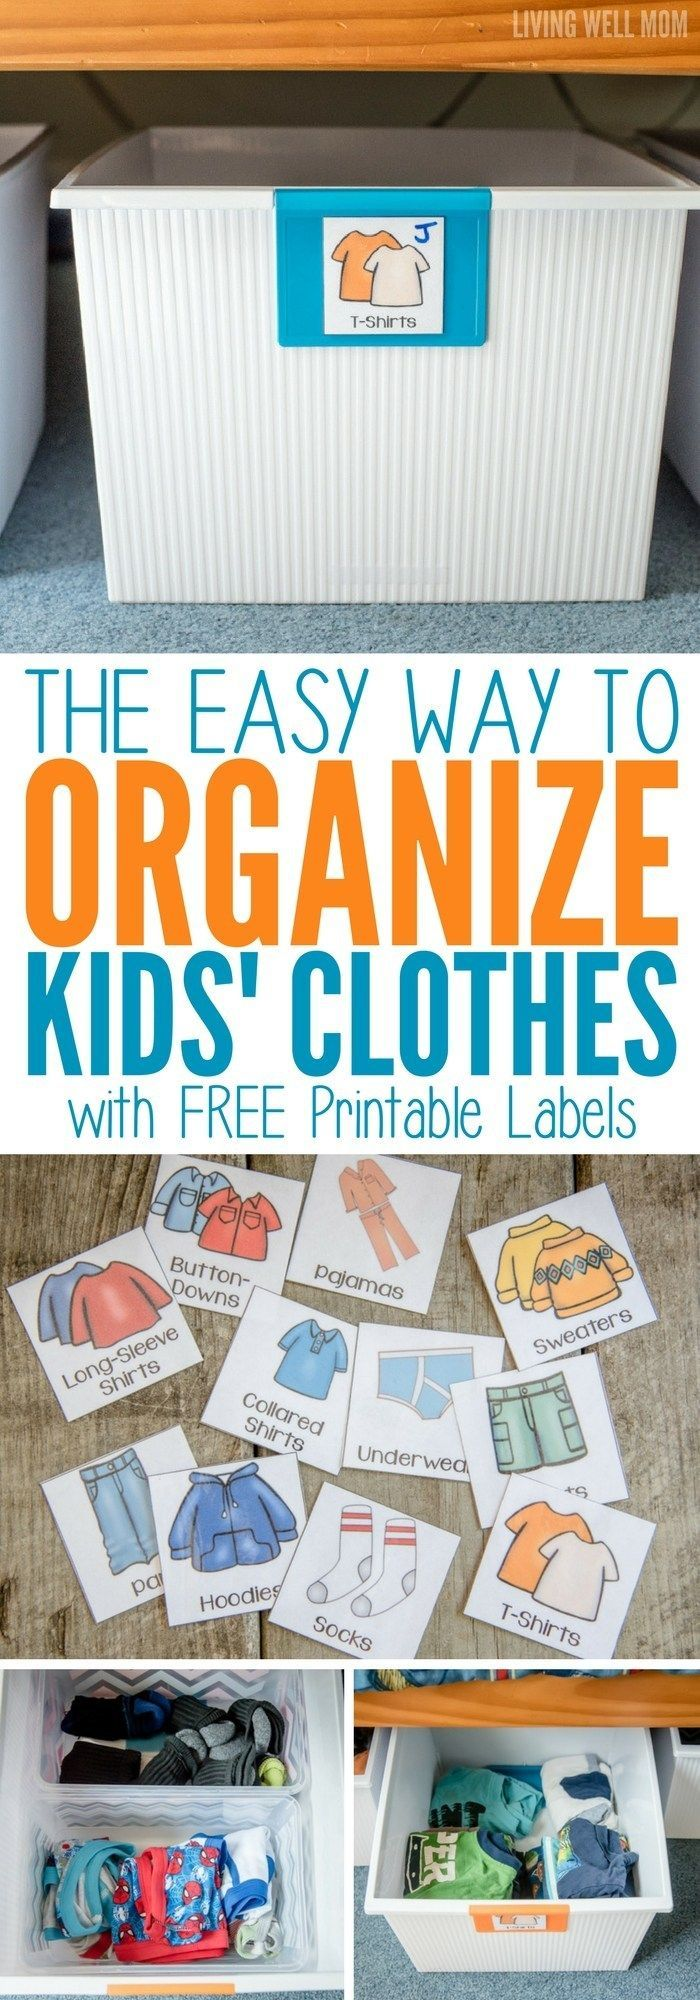 The Easy Way to Organize Kids' Clothes -   12 DIY Clothes Storage how to organize ideas